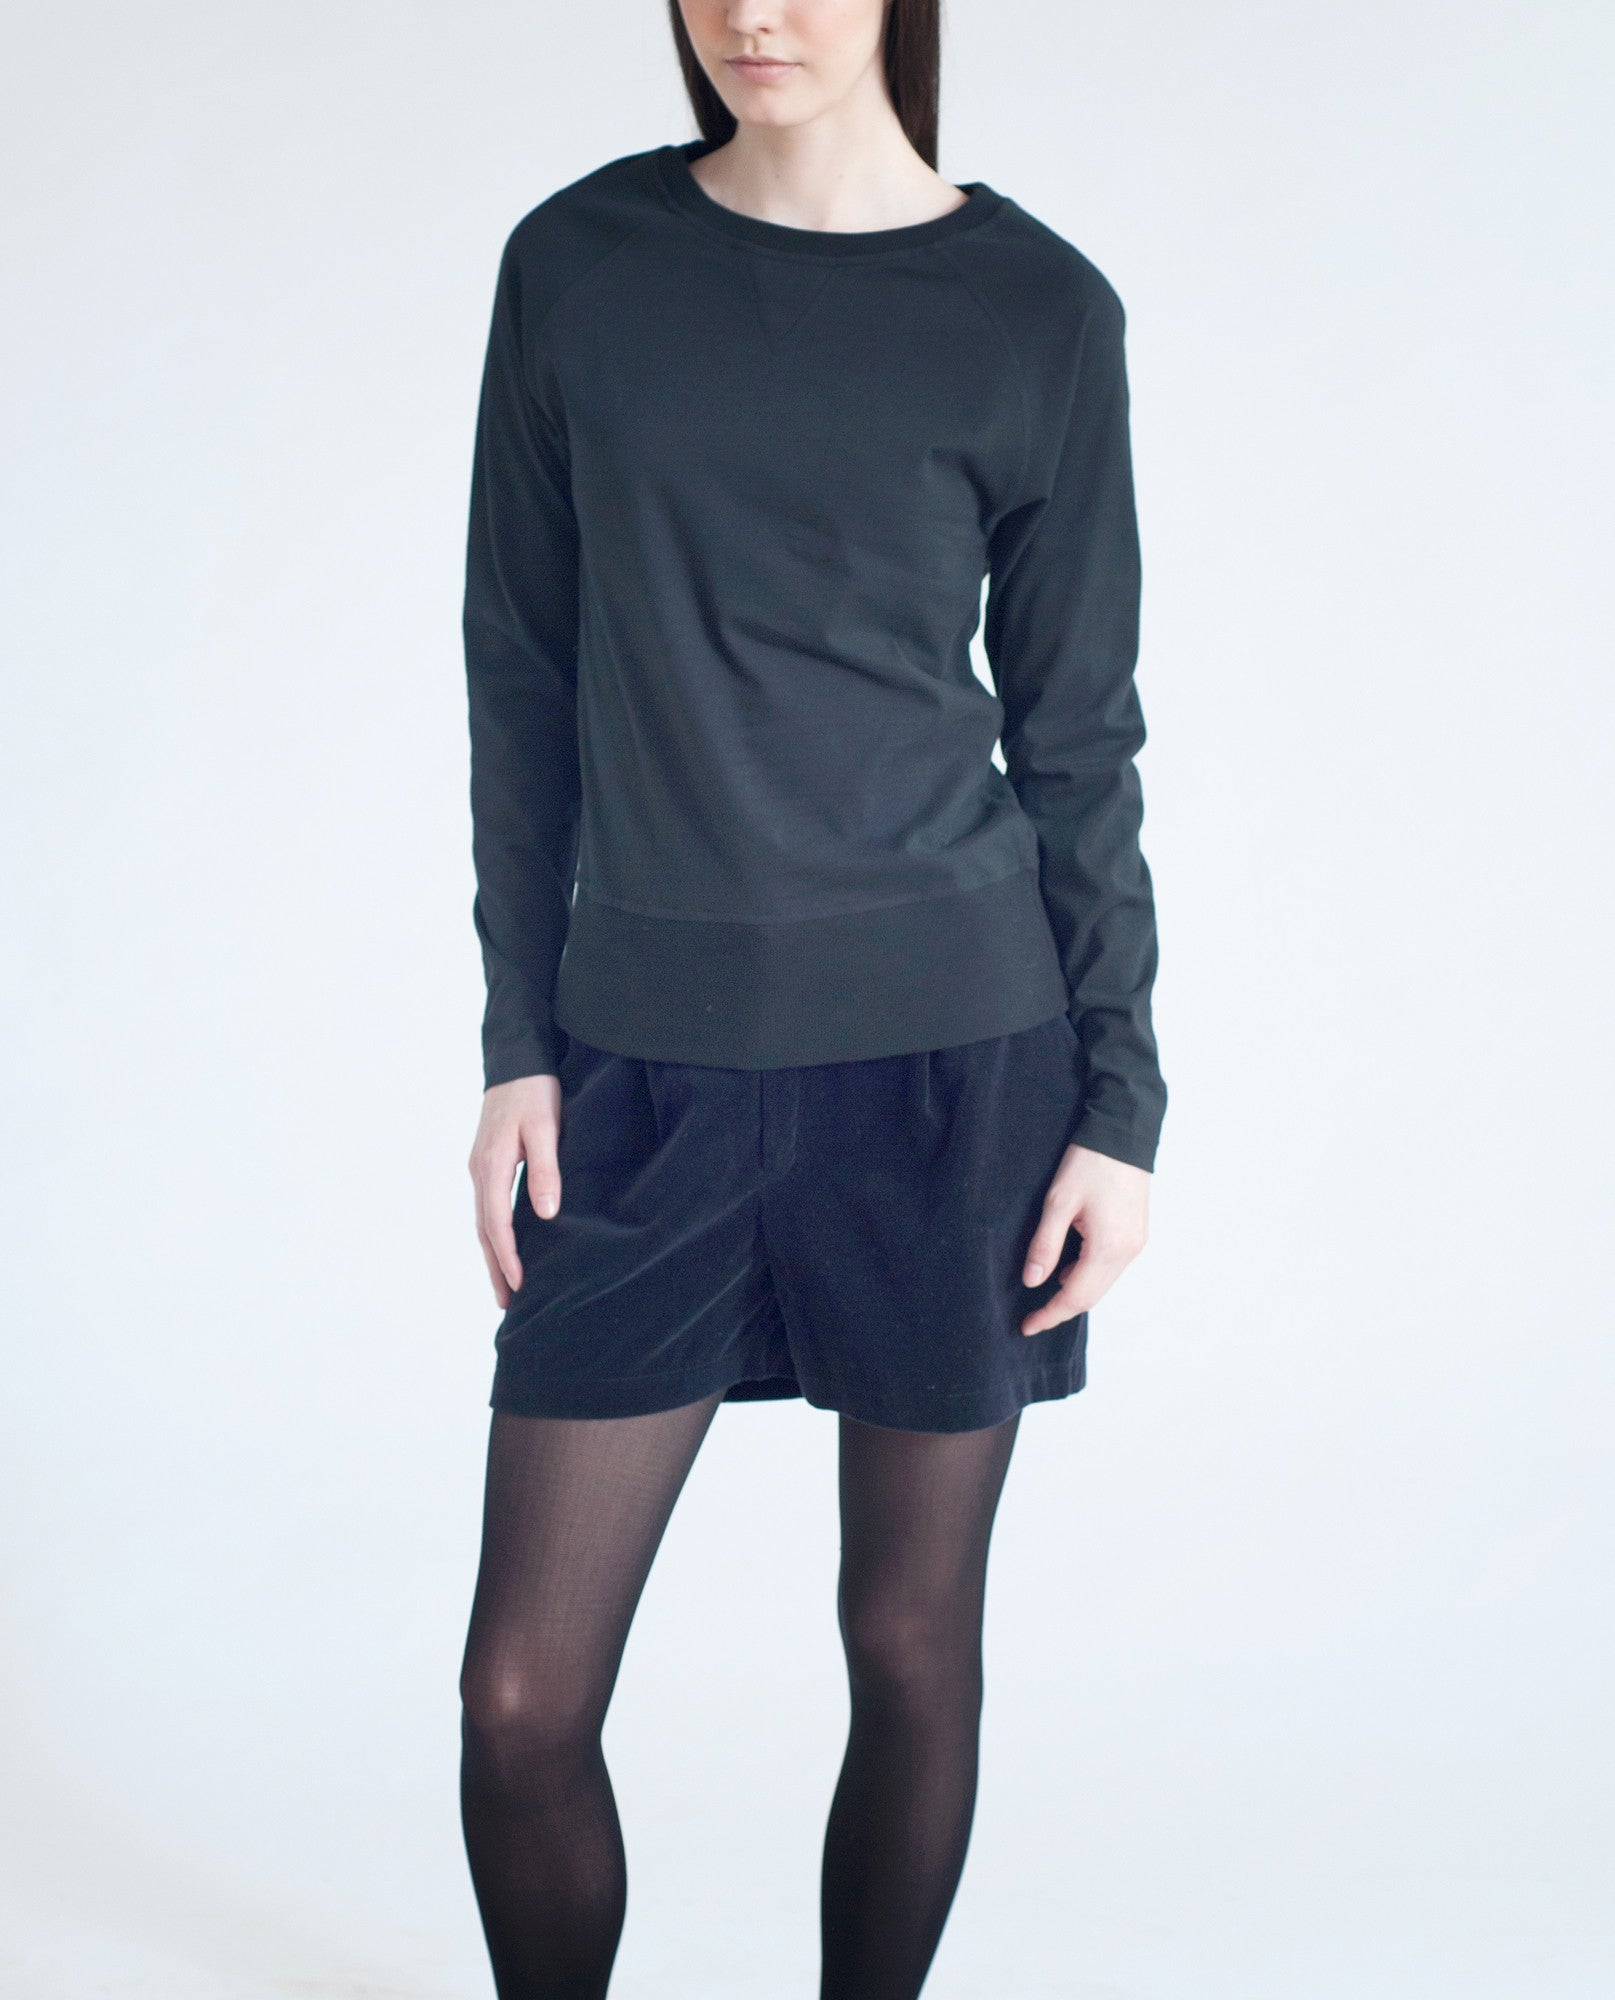 TONI Organic Cotton Top In Black from Beaumont Organic